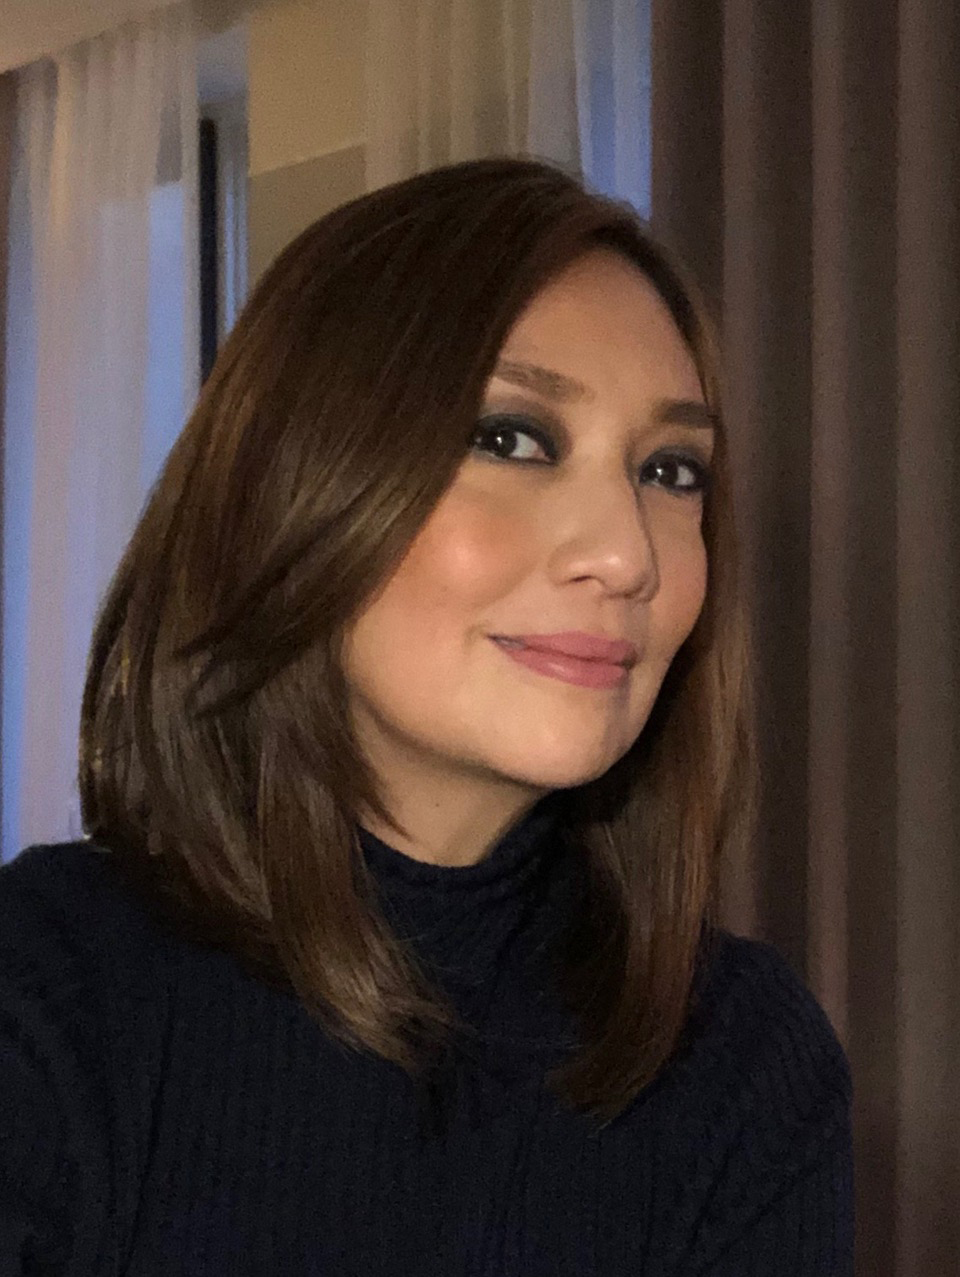 Merlee Jayme chairmom/chief creative officer Dentsu Jayme Syfu Philippines reflects on More family time at home: My wish has been granted in a weird way